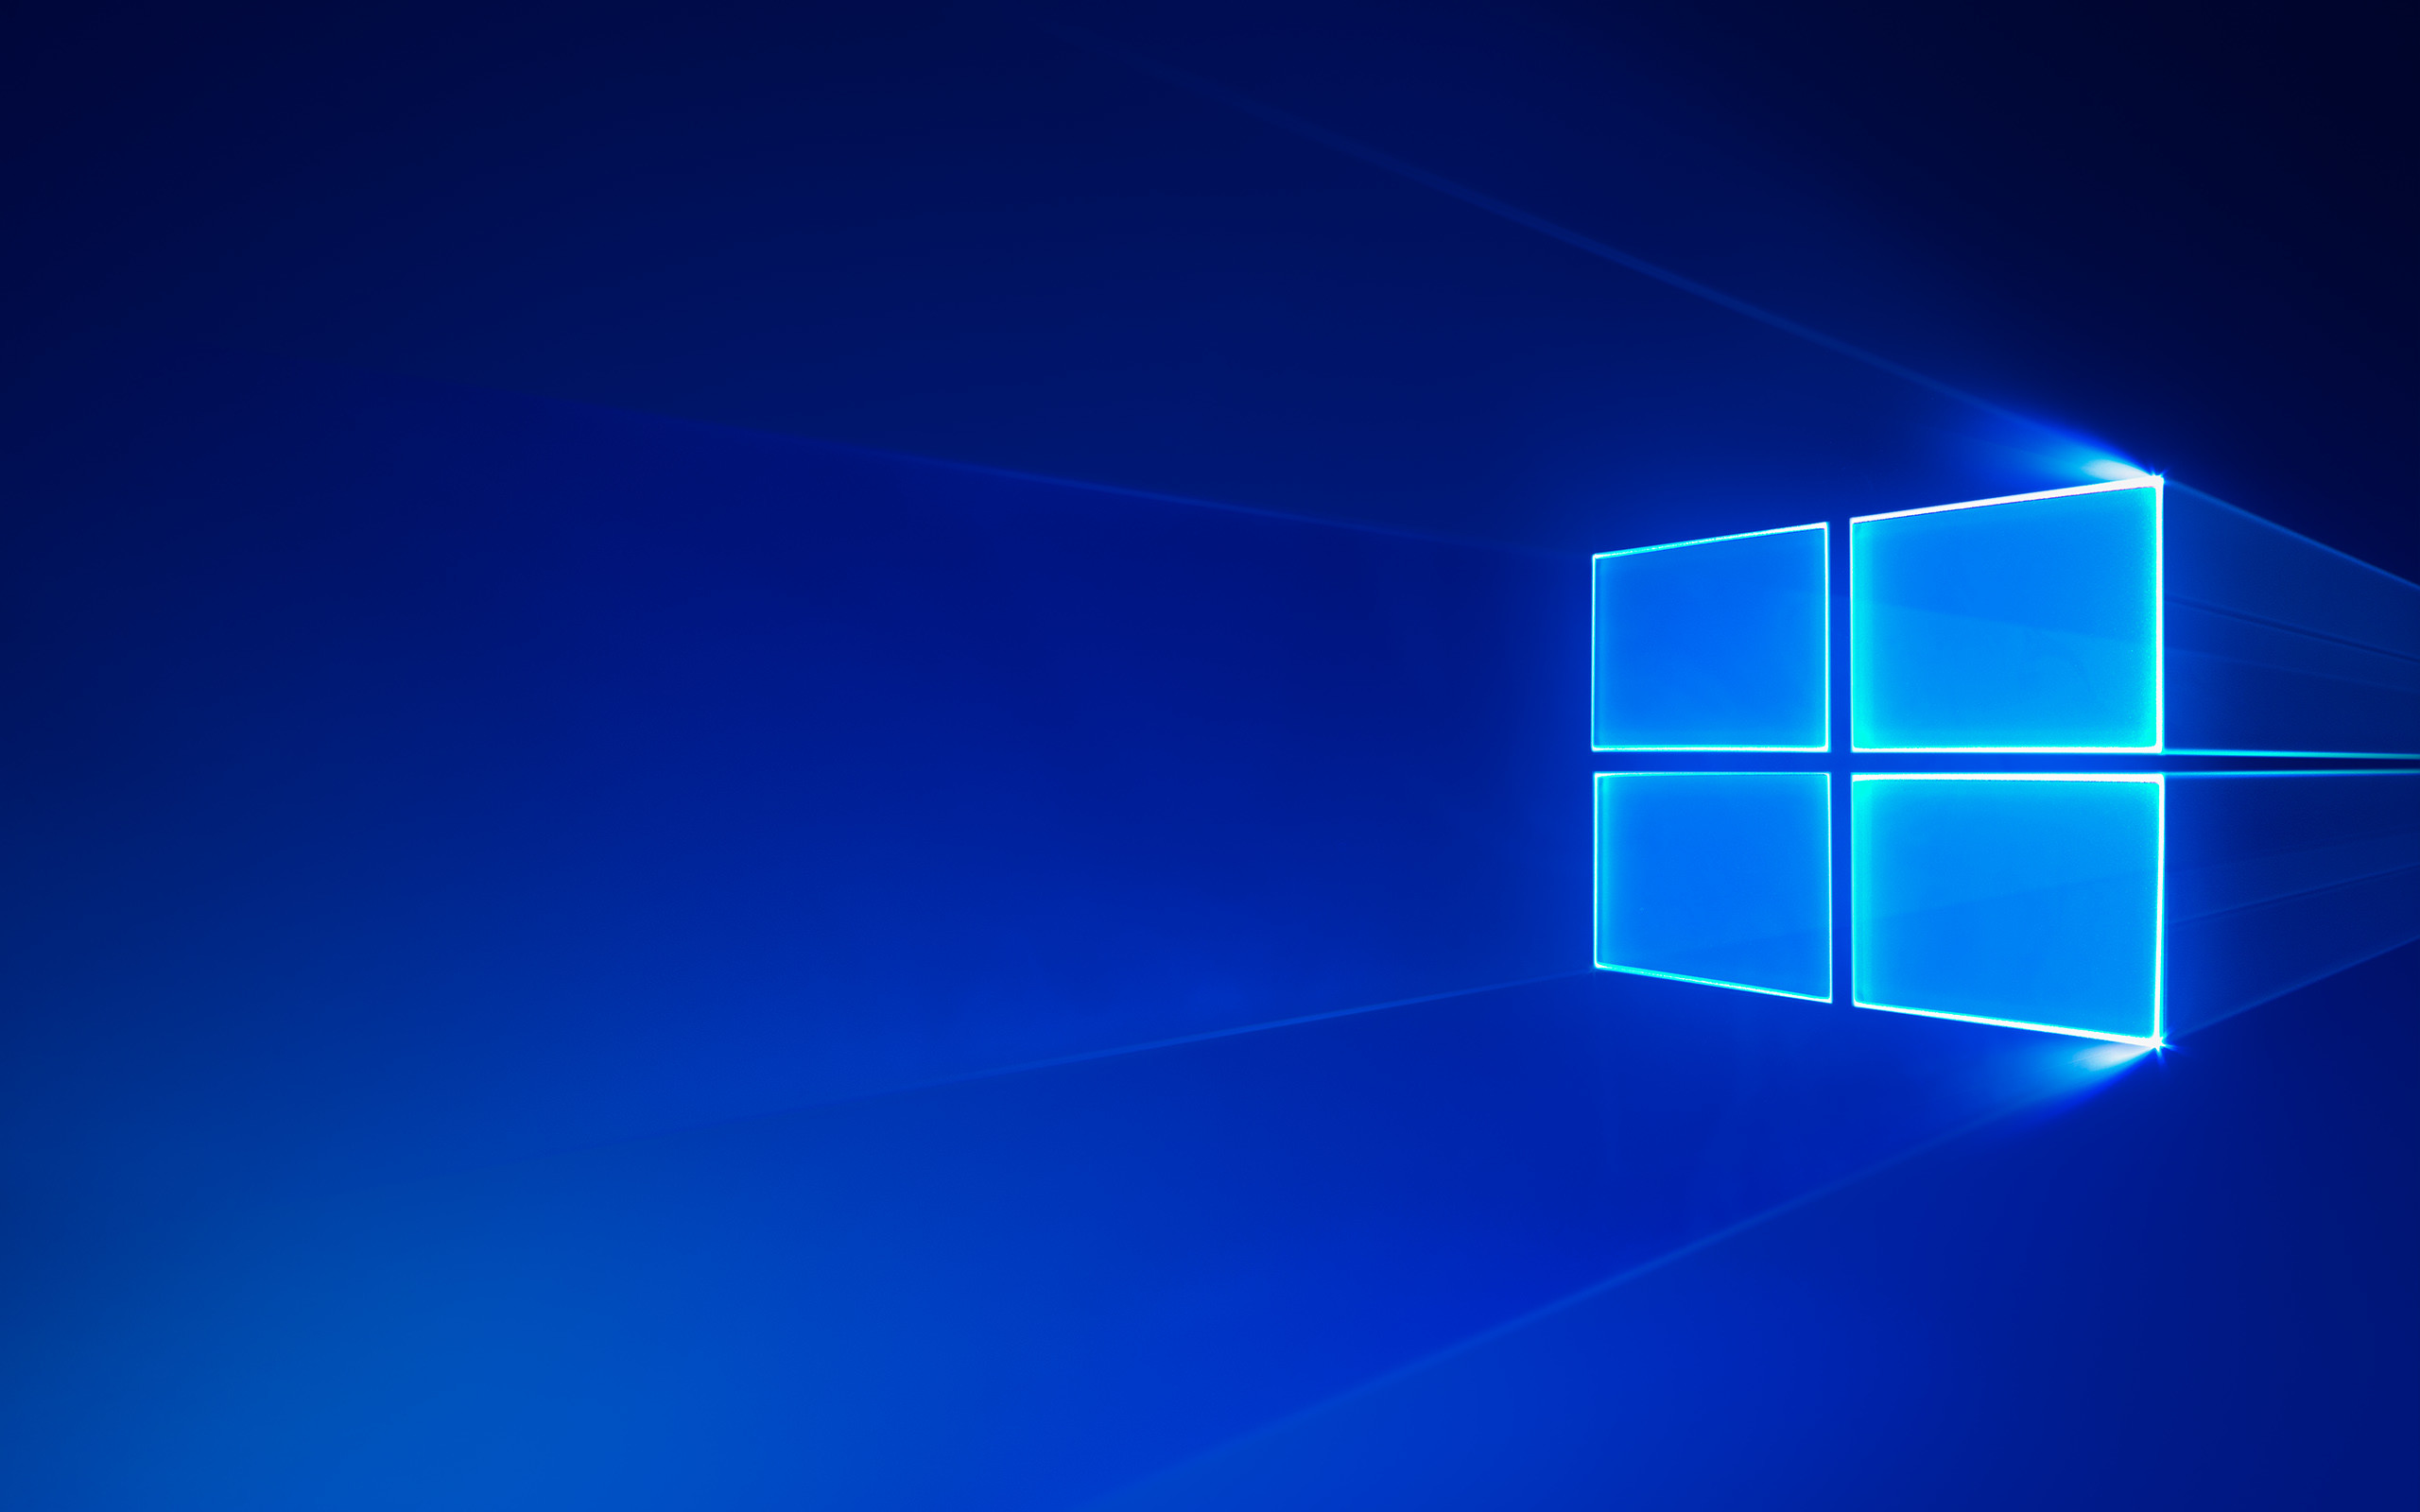 Wallpaper Hd Windows 10 Posted By Samantha Johnson